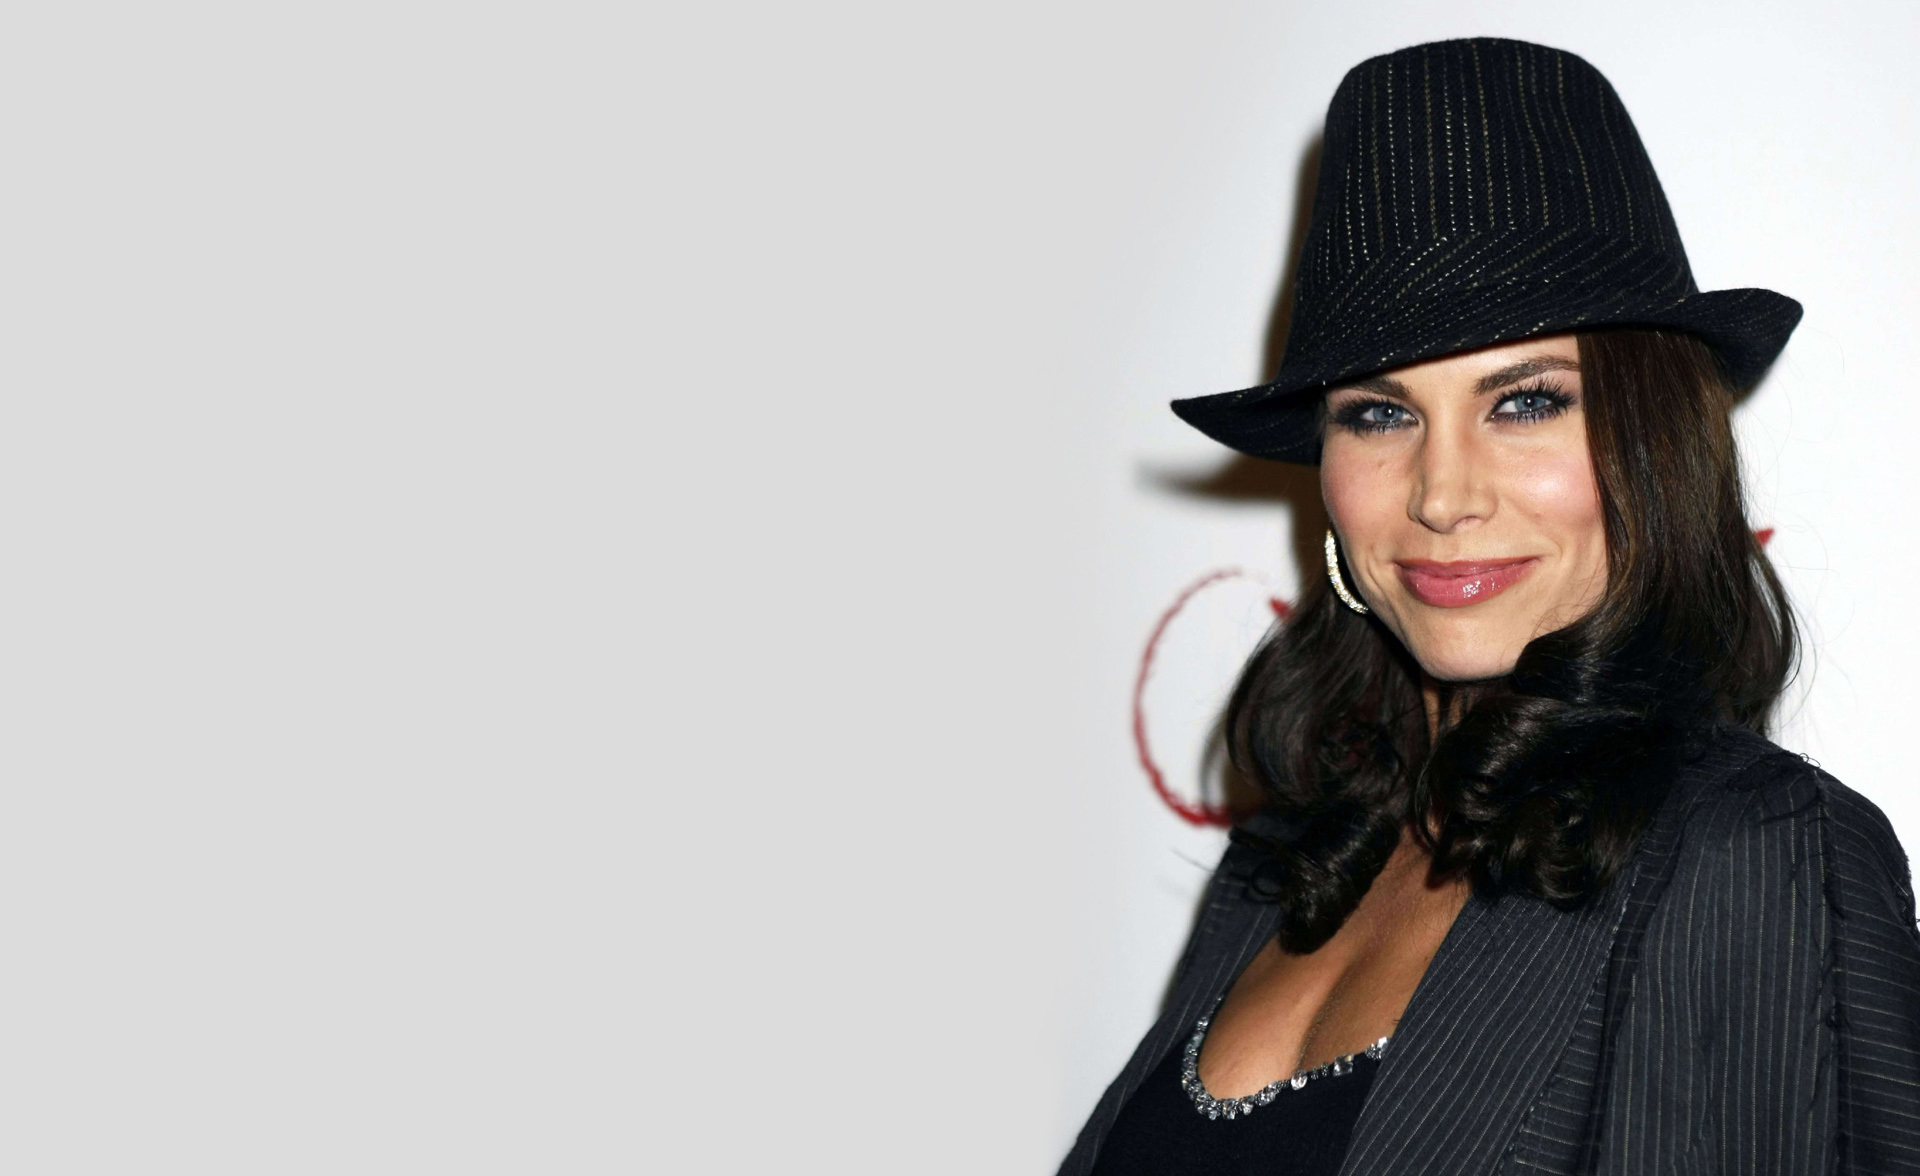 Brooke Burns High Quality Wallpapers